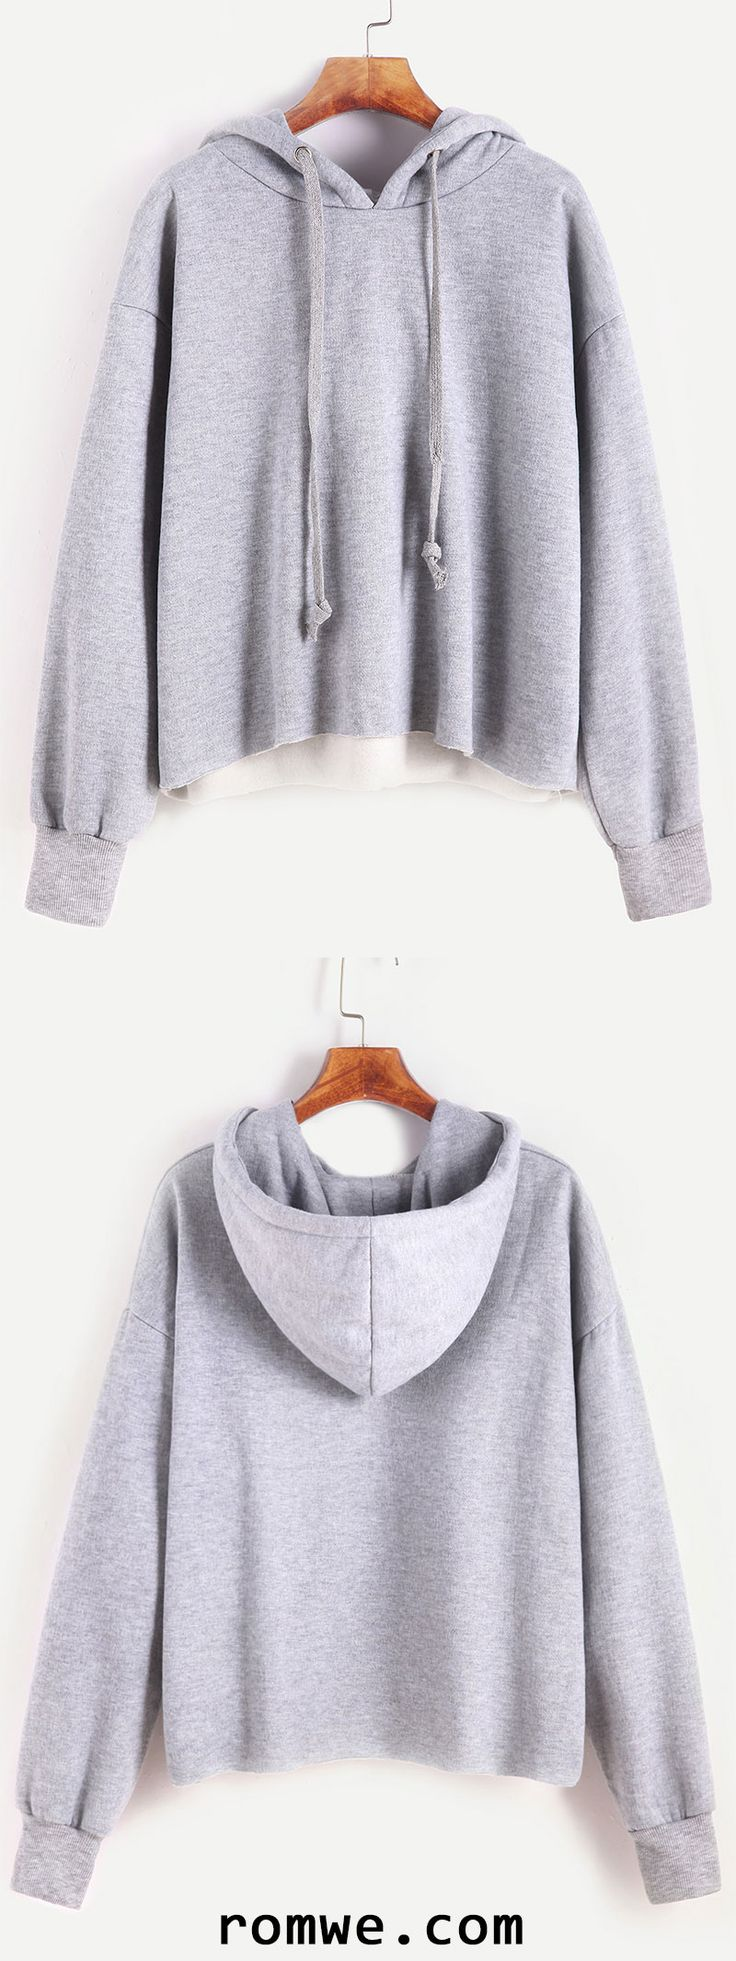 Pale Grey Dropped Shoulder Seam Hooded Sweatshirt